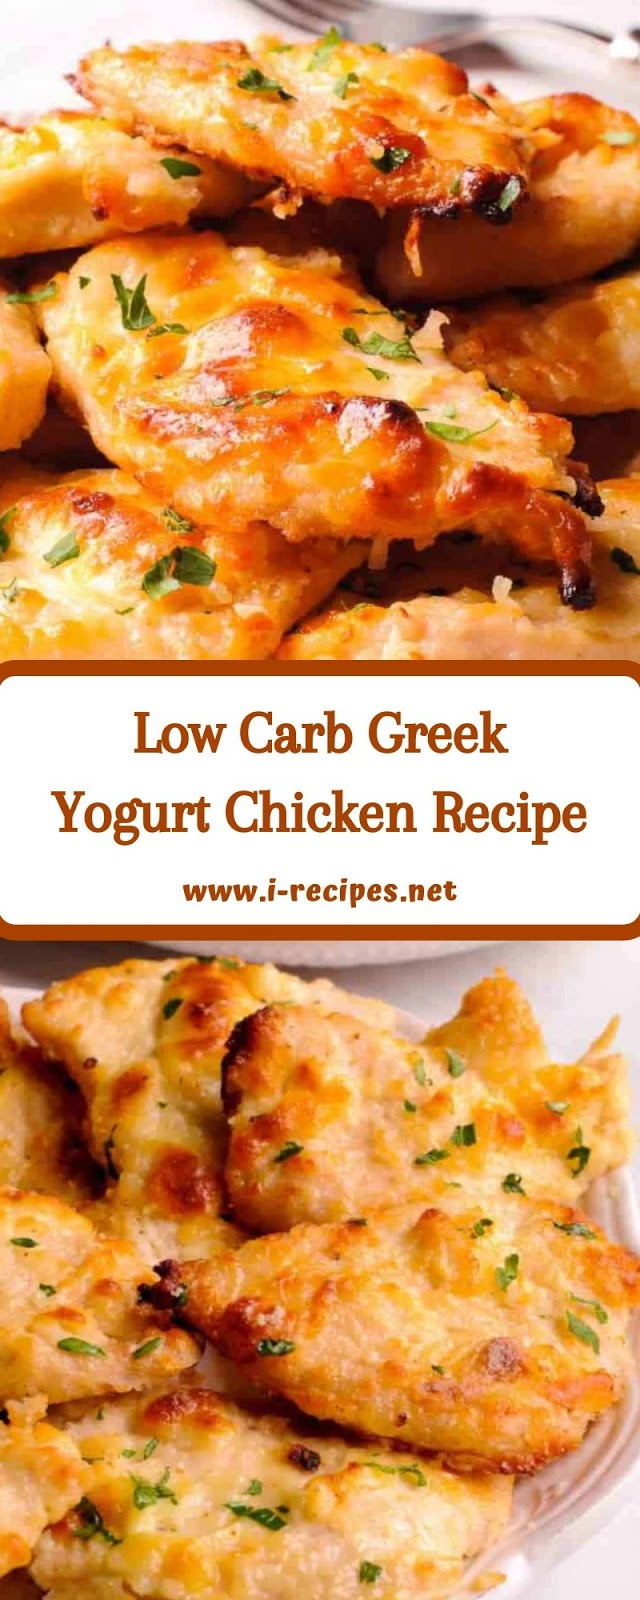 Low Carb Greek Yogurt Chicken Recipe